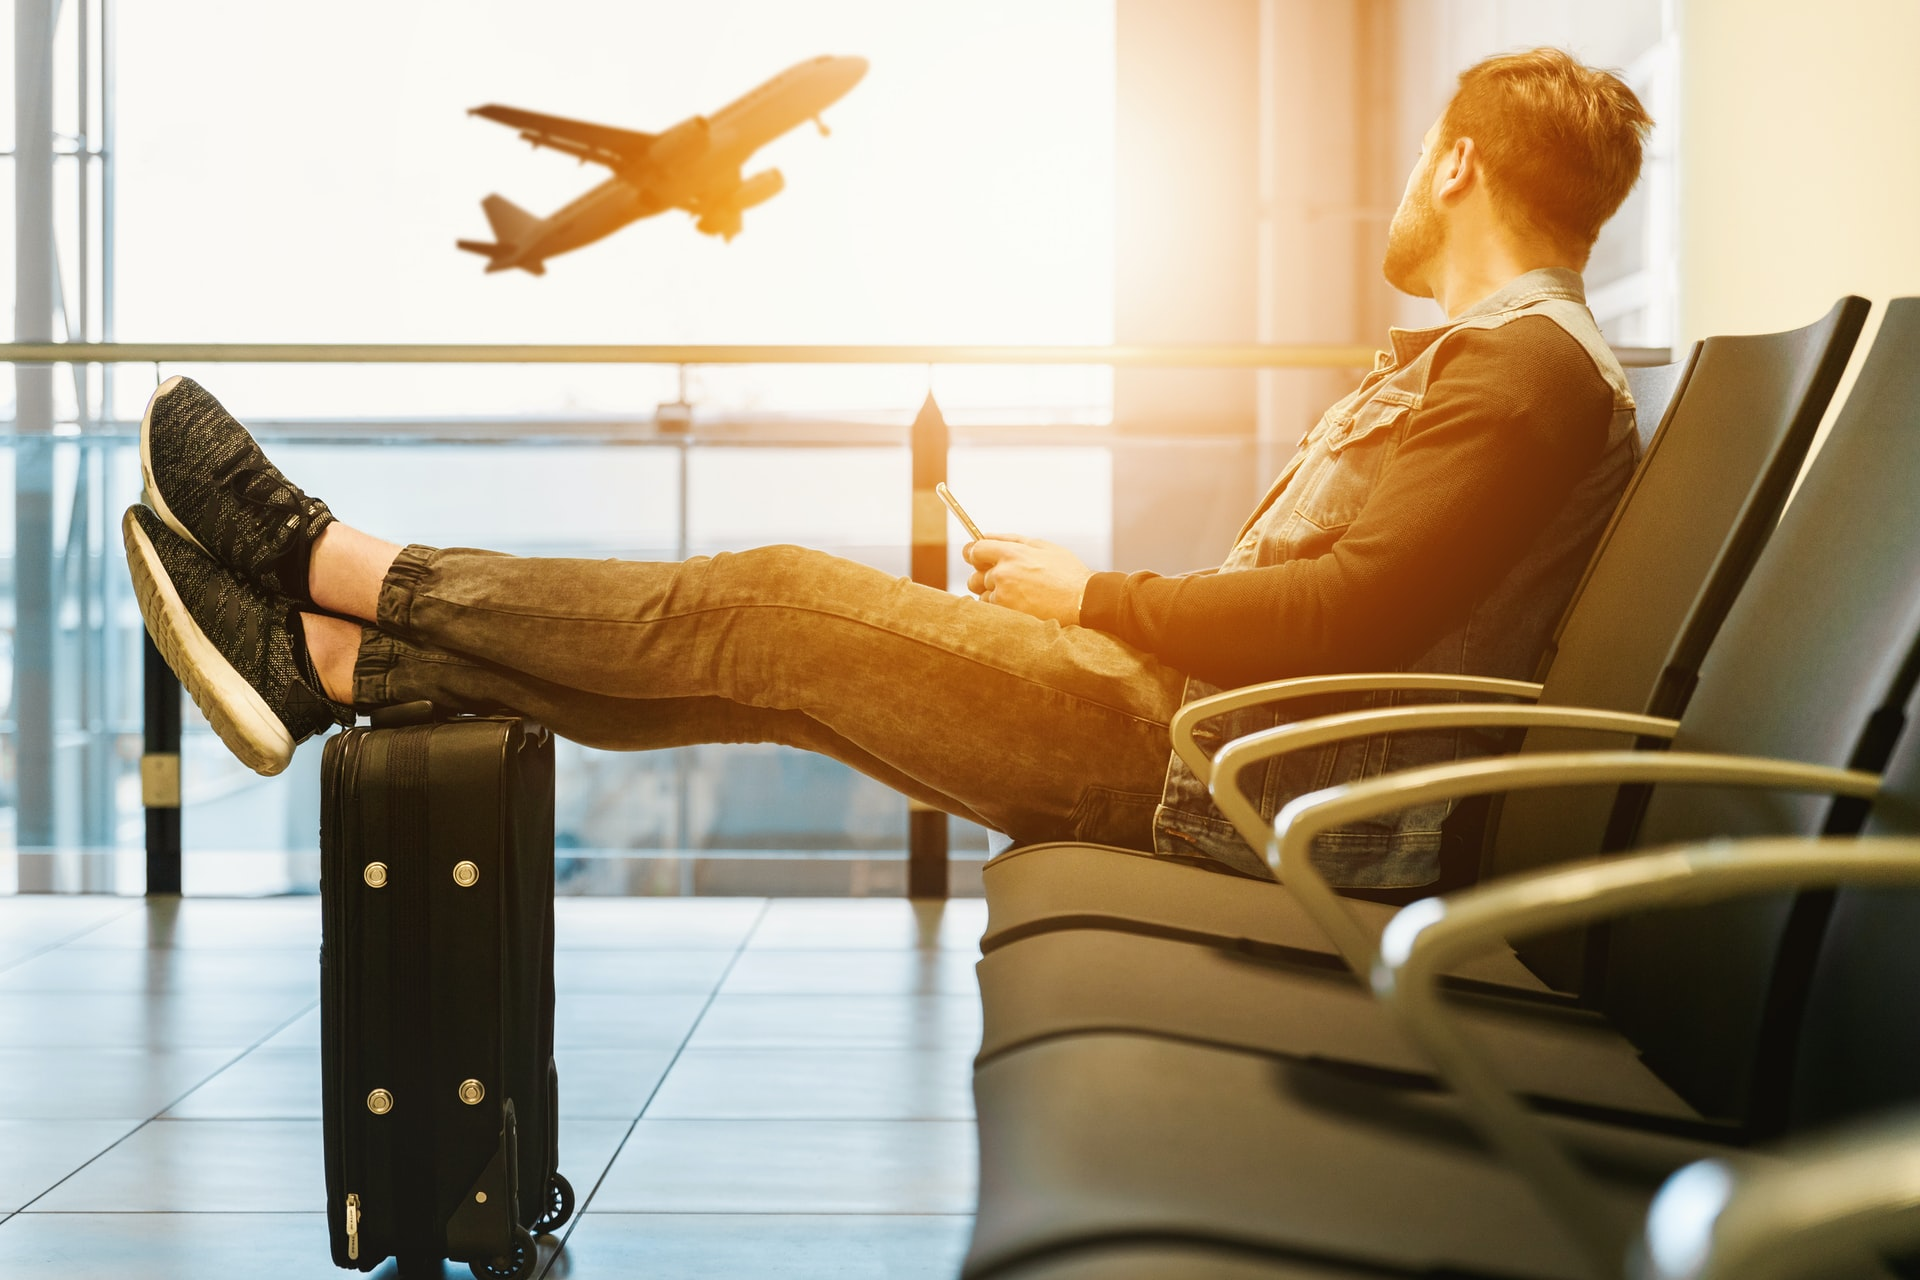 5 ways technology has changed the way we travel